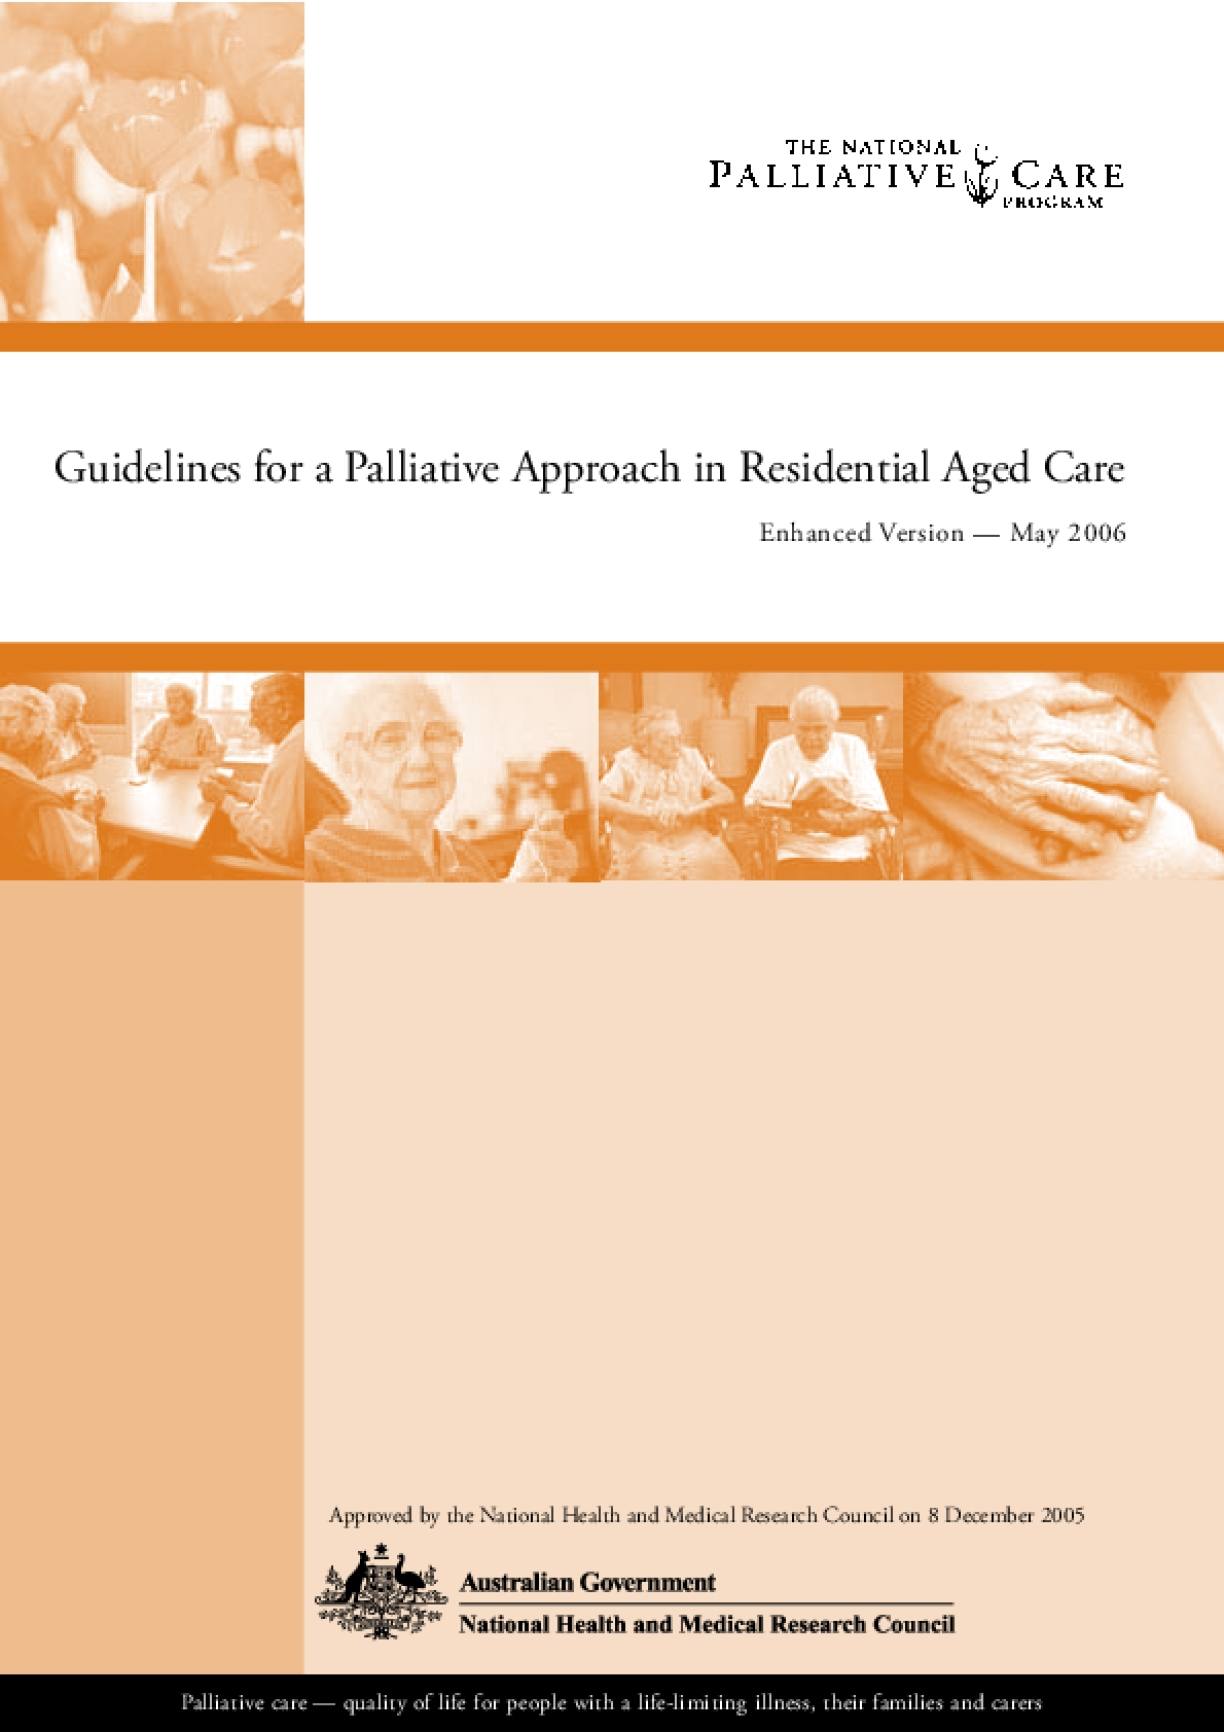 Guidelines for a Palliative Approach in Residential Aged Care - Enhanced version